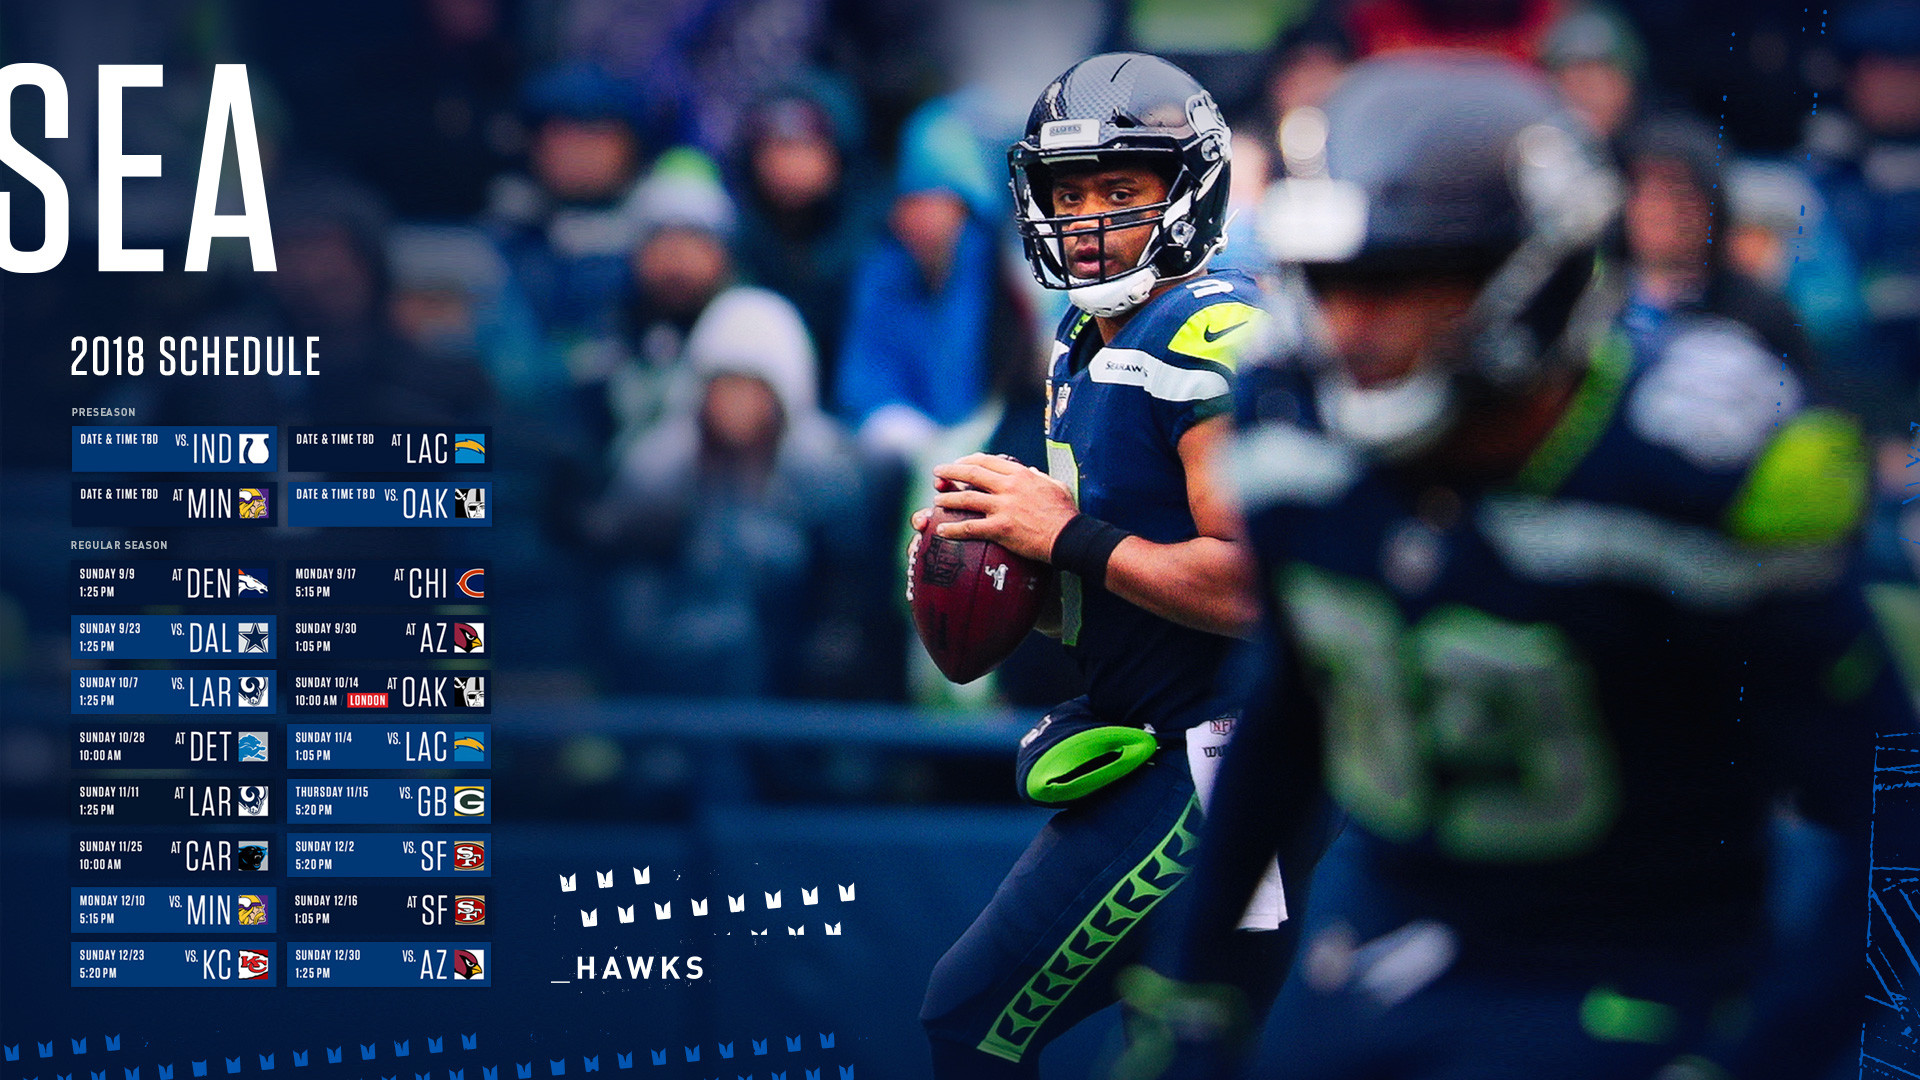 1920x1080 ... Televisions) | 640x1136 (iPod Touch) | 750x1334 (iPhone 6,7,8) |  800x1280 (Other Phones). 2018 Schedule Wallpaper